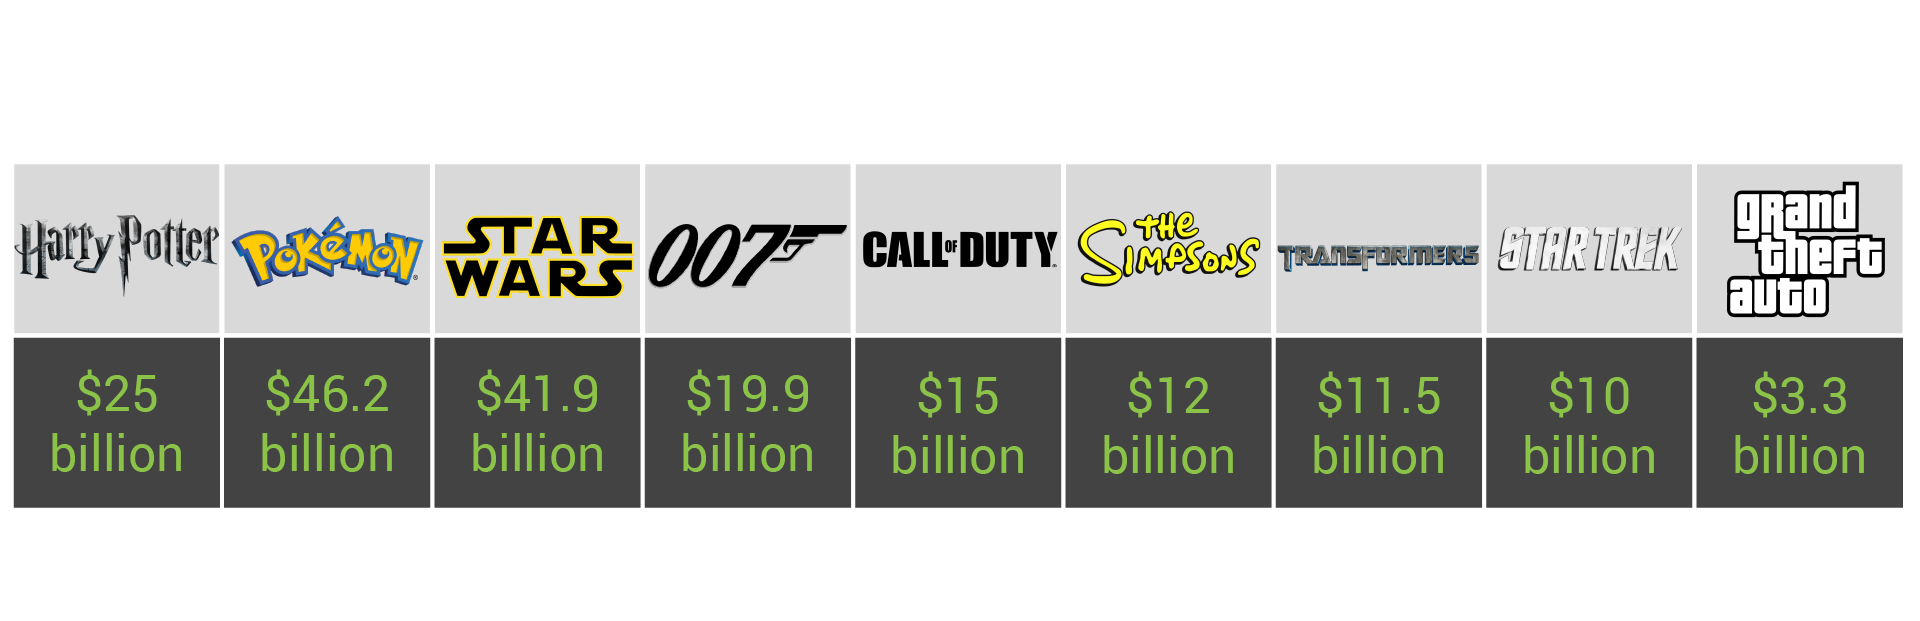 A chart that shows different franchises and their networth, all in billions.